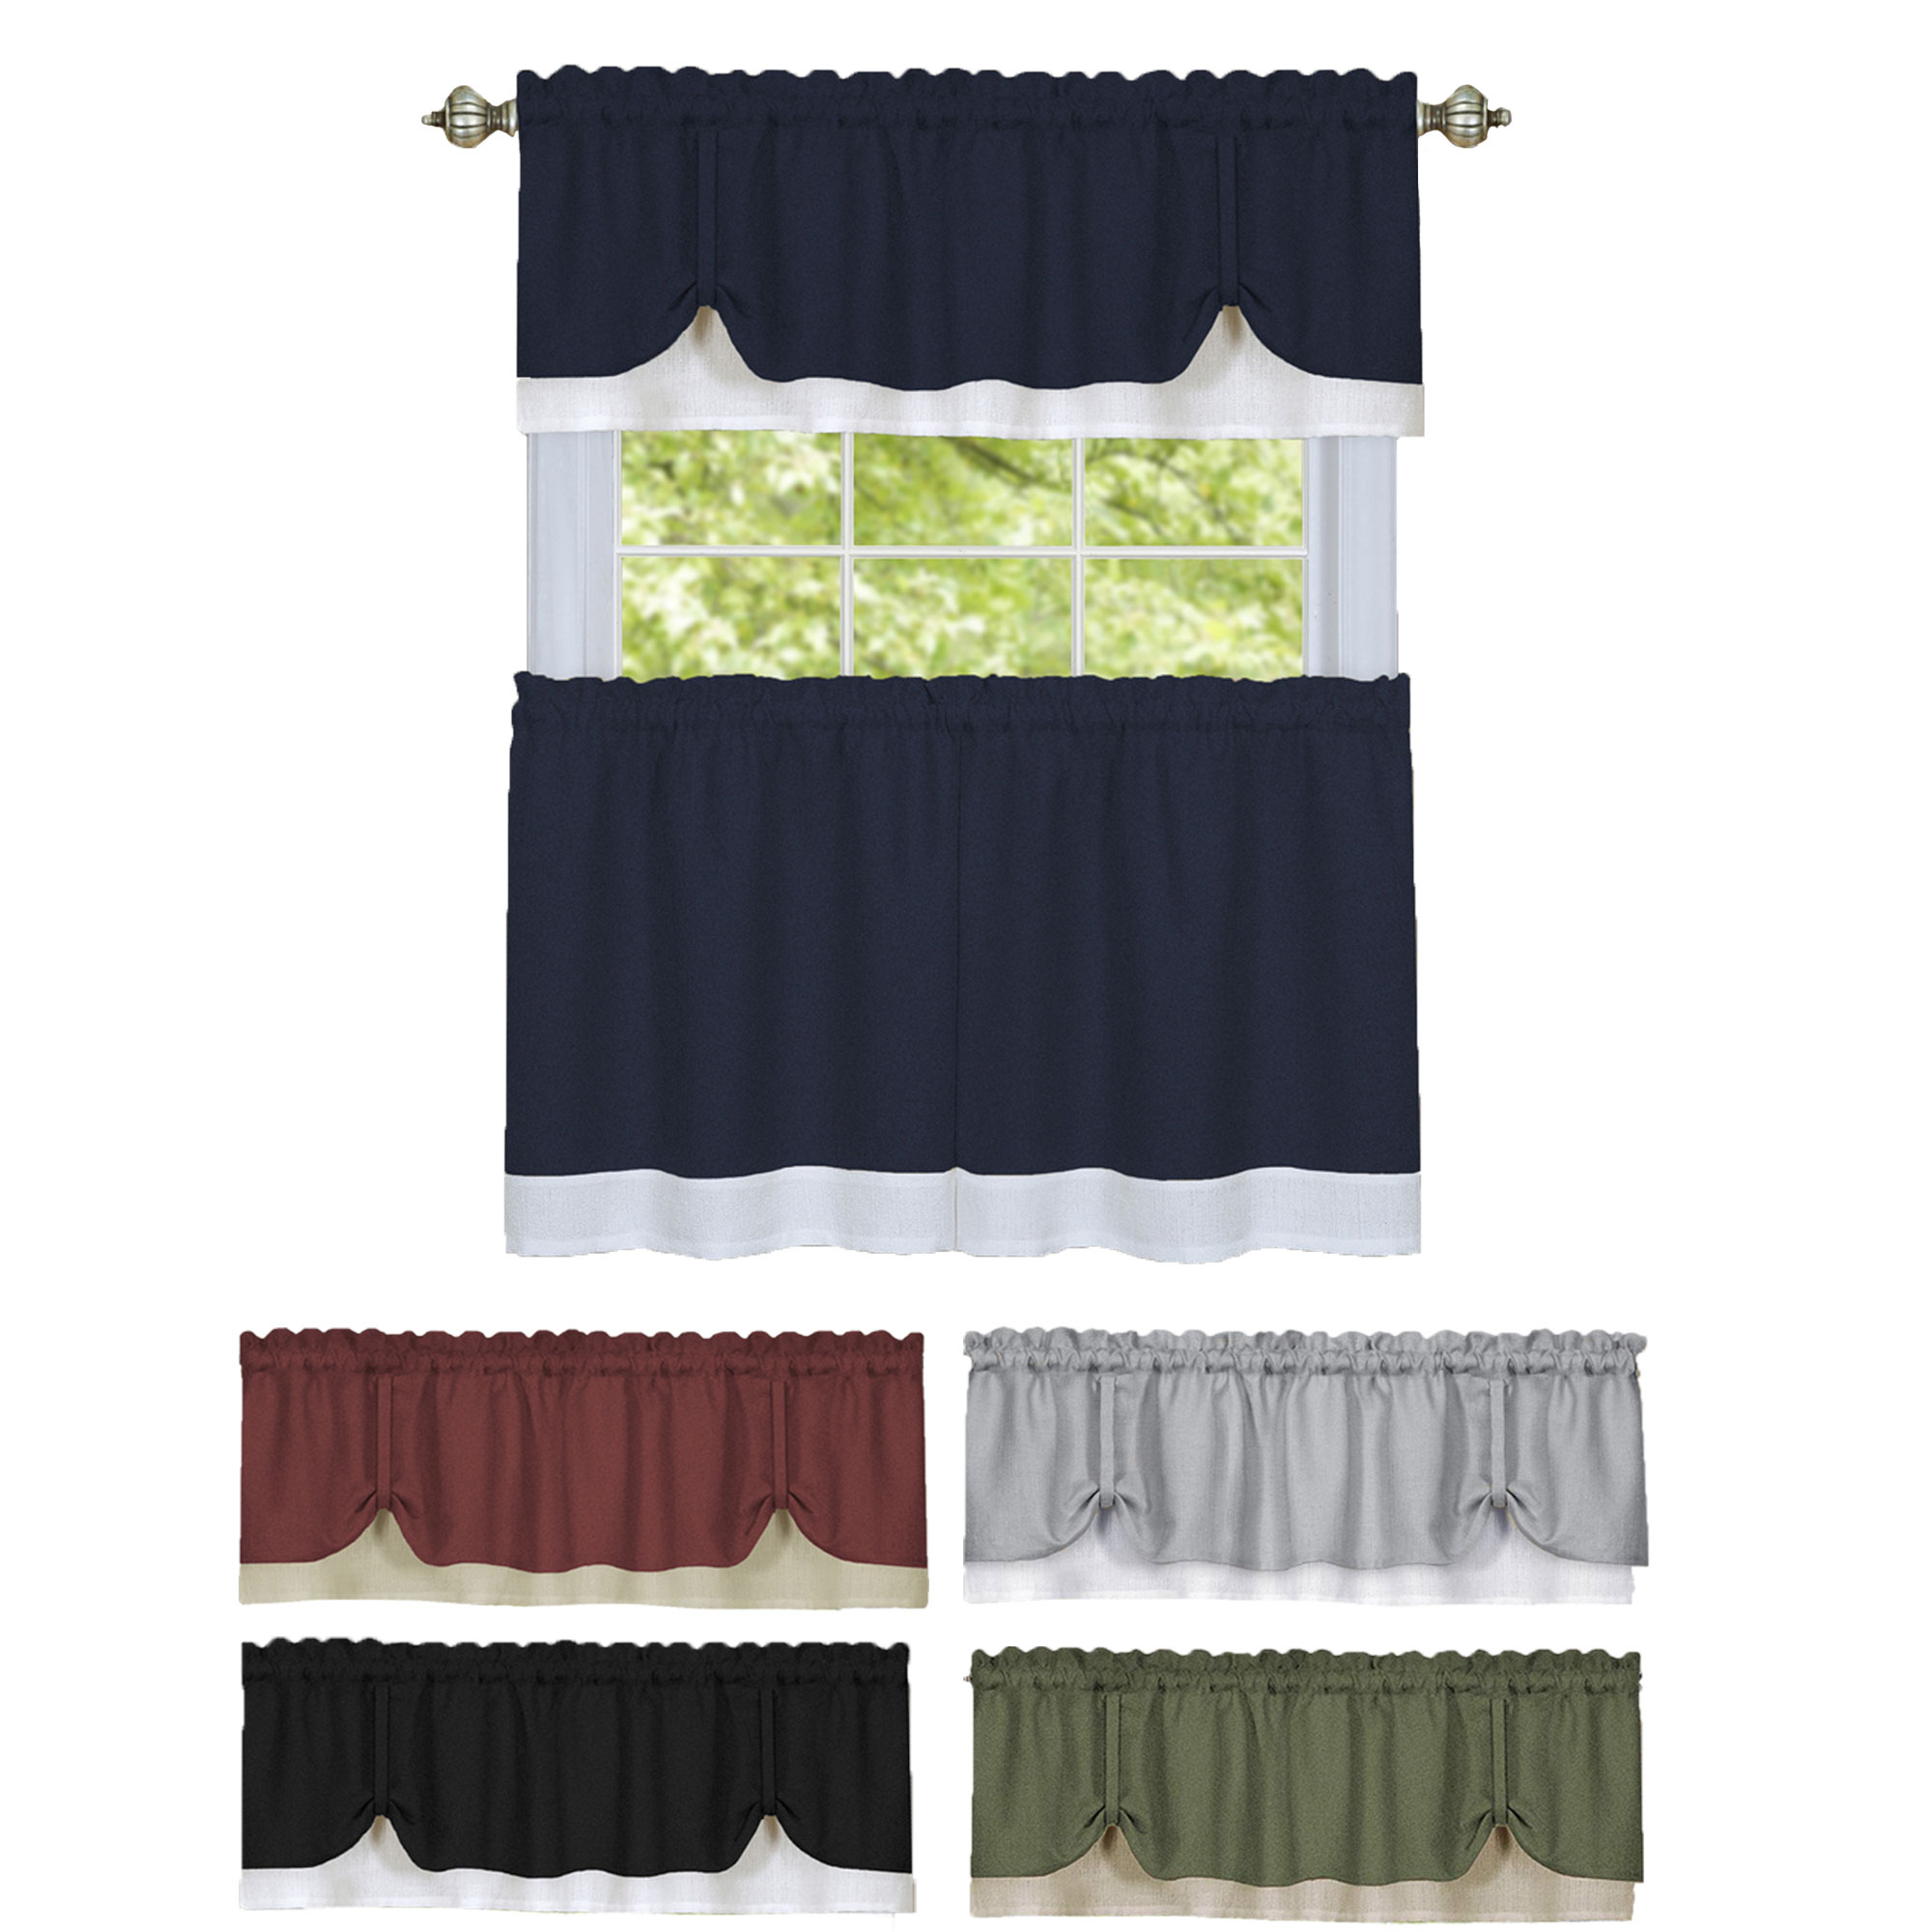 Details About Solid Window Curtain Double Layer Tier Pair & Valance Set In Window Curtain Tier And Valance Sets (View 3 of 20)